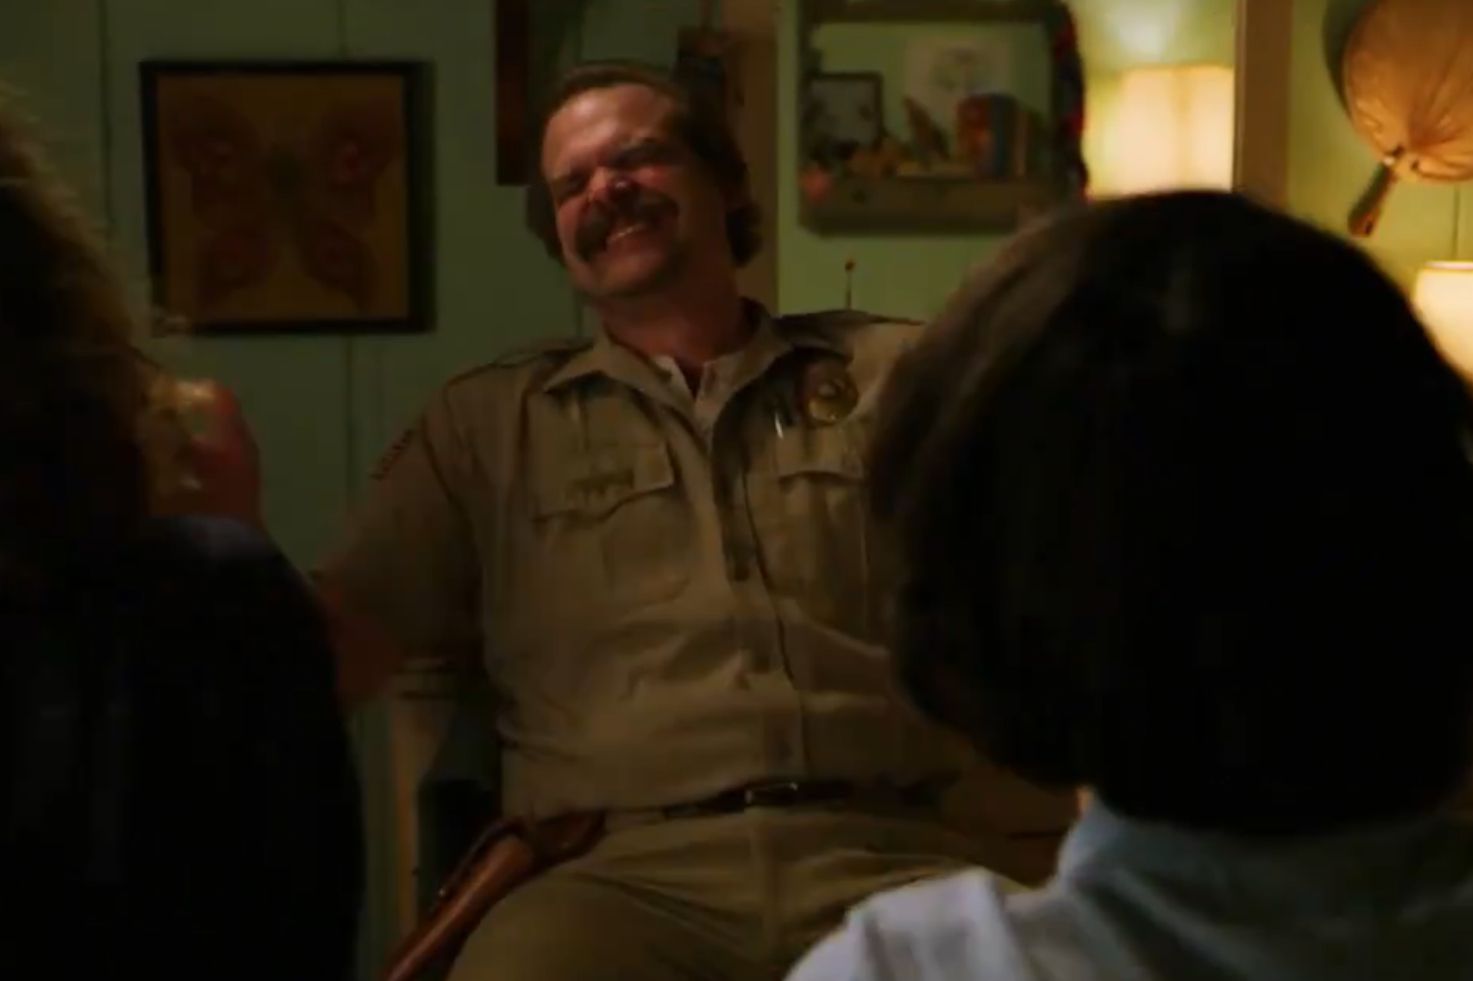 The 'Stranger Things' Cast Descends into Silliness in Season 3 Blooper Reel